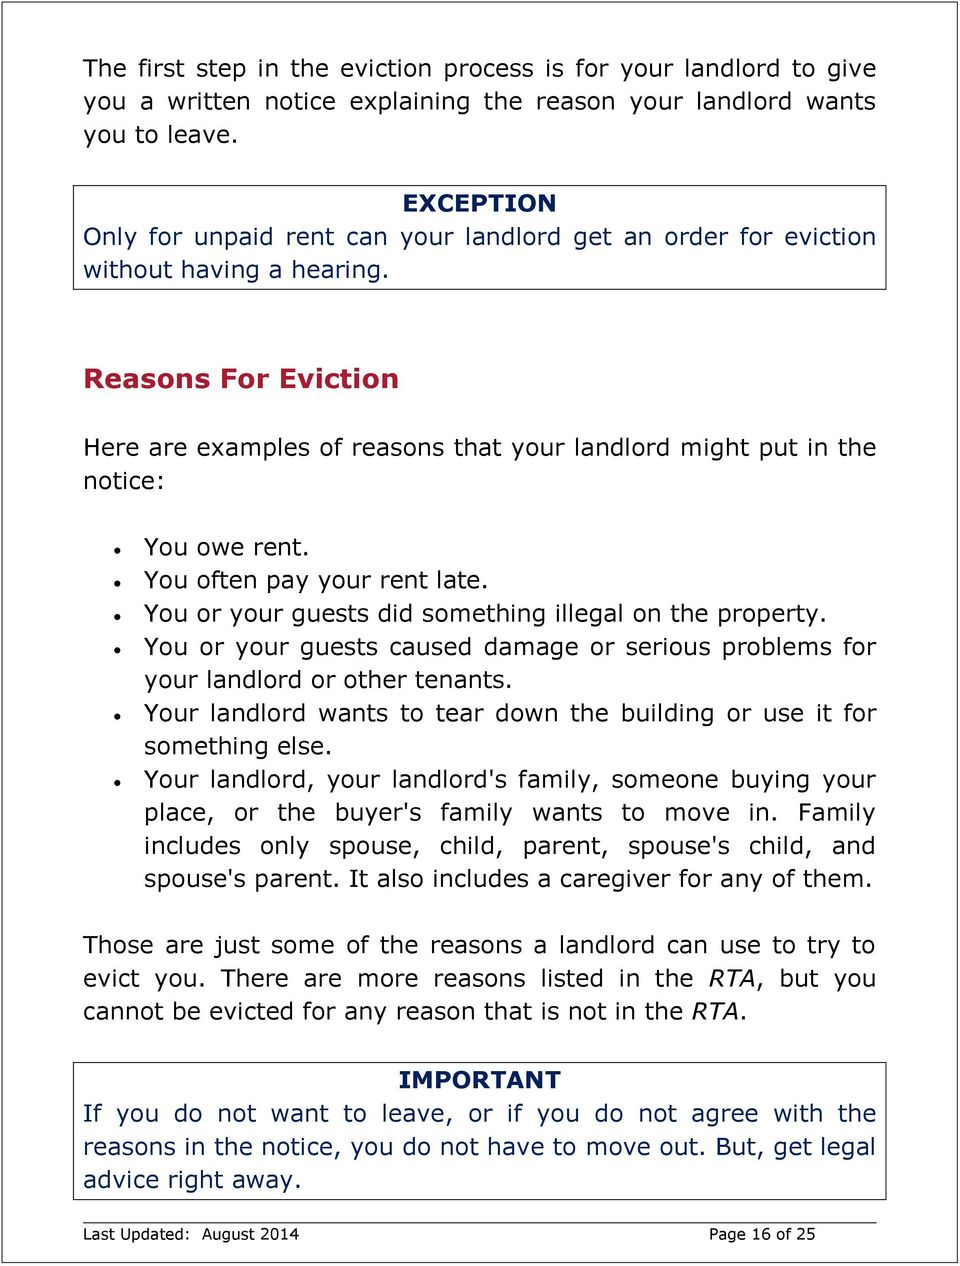 Reasons For Eviction Here are examples of reasons that your landlord might put in the notice: You owe rent. You often pay your rent late. You or your guests did something illegal on the property.